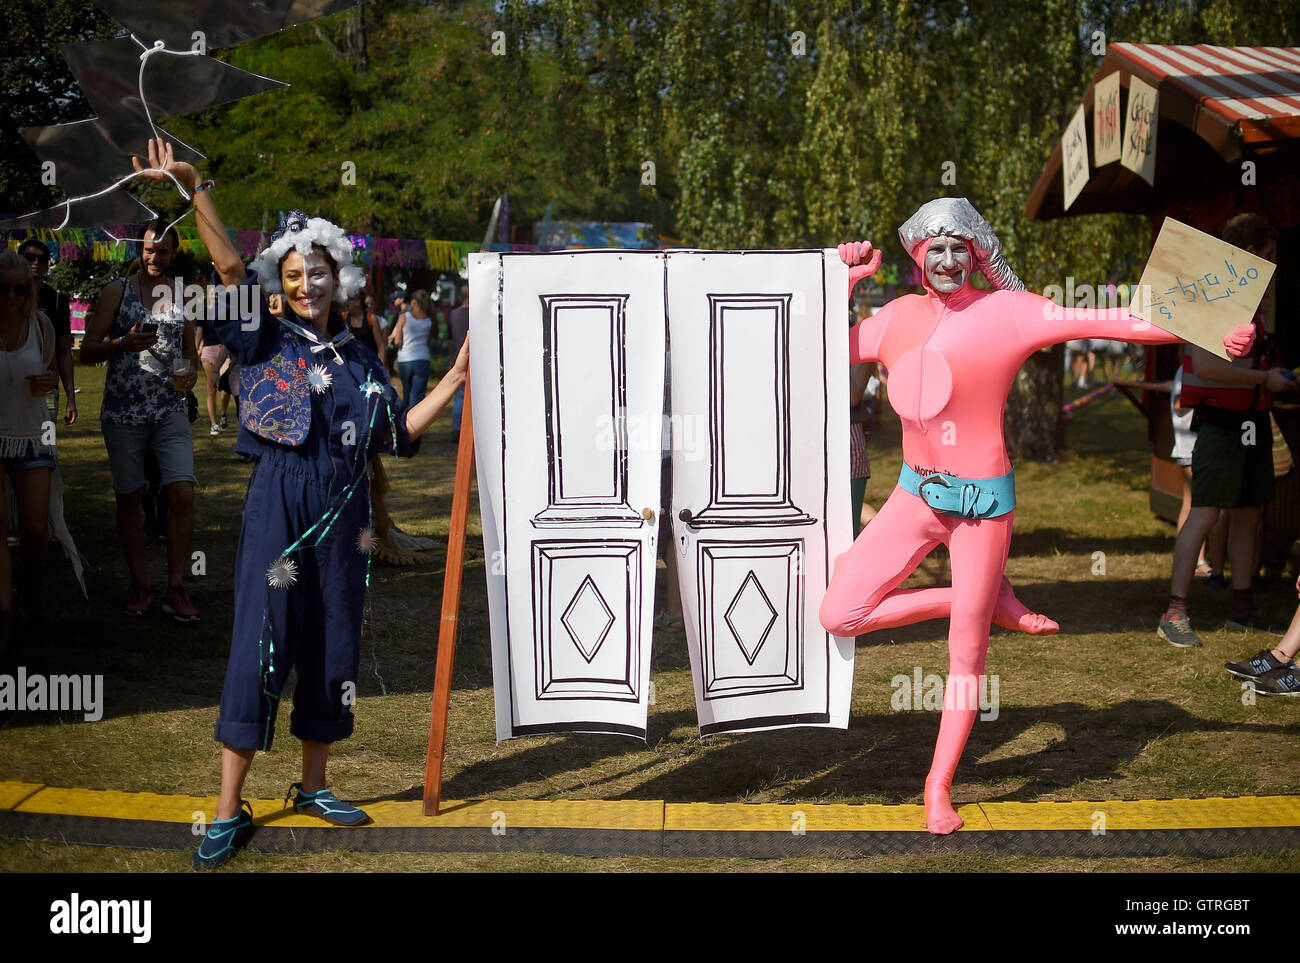 Berlin, Germany. 10th Sep, 2016. Artists greet the visitors of the music festival Lollapalooza in Berlin, Germany, - Stock Image